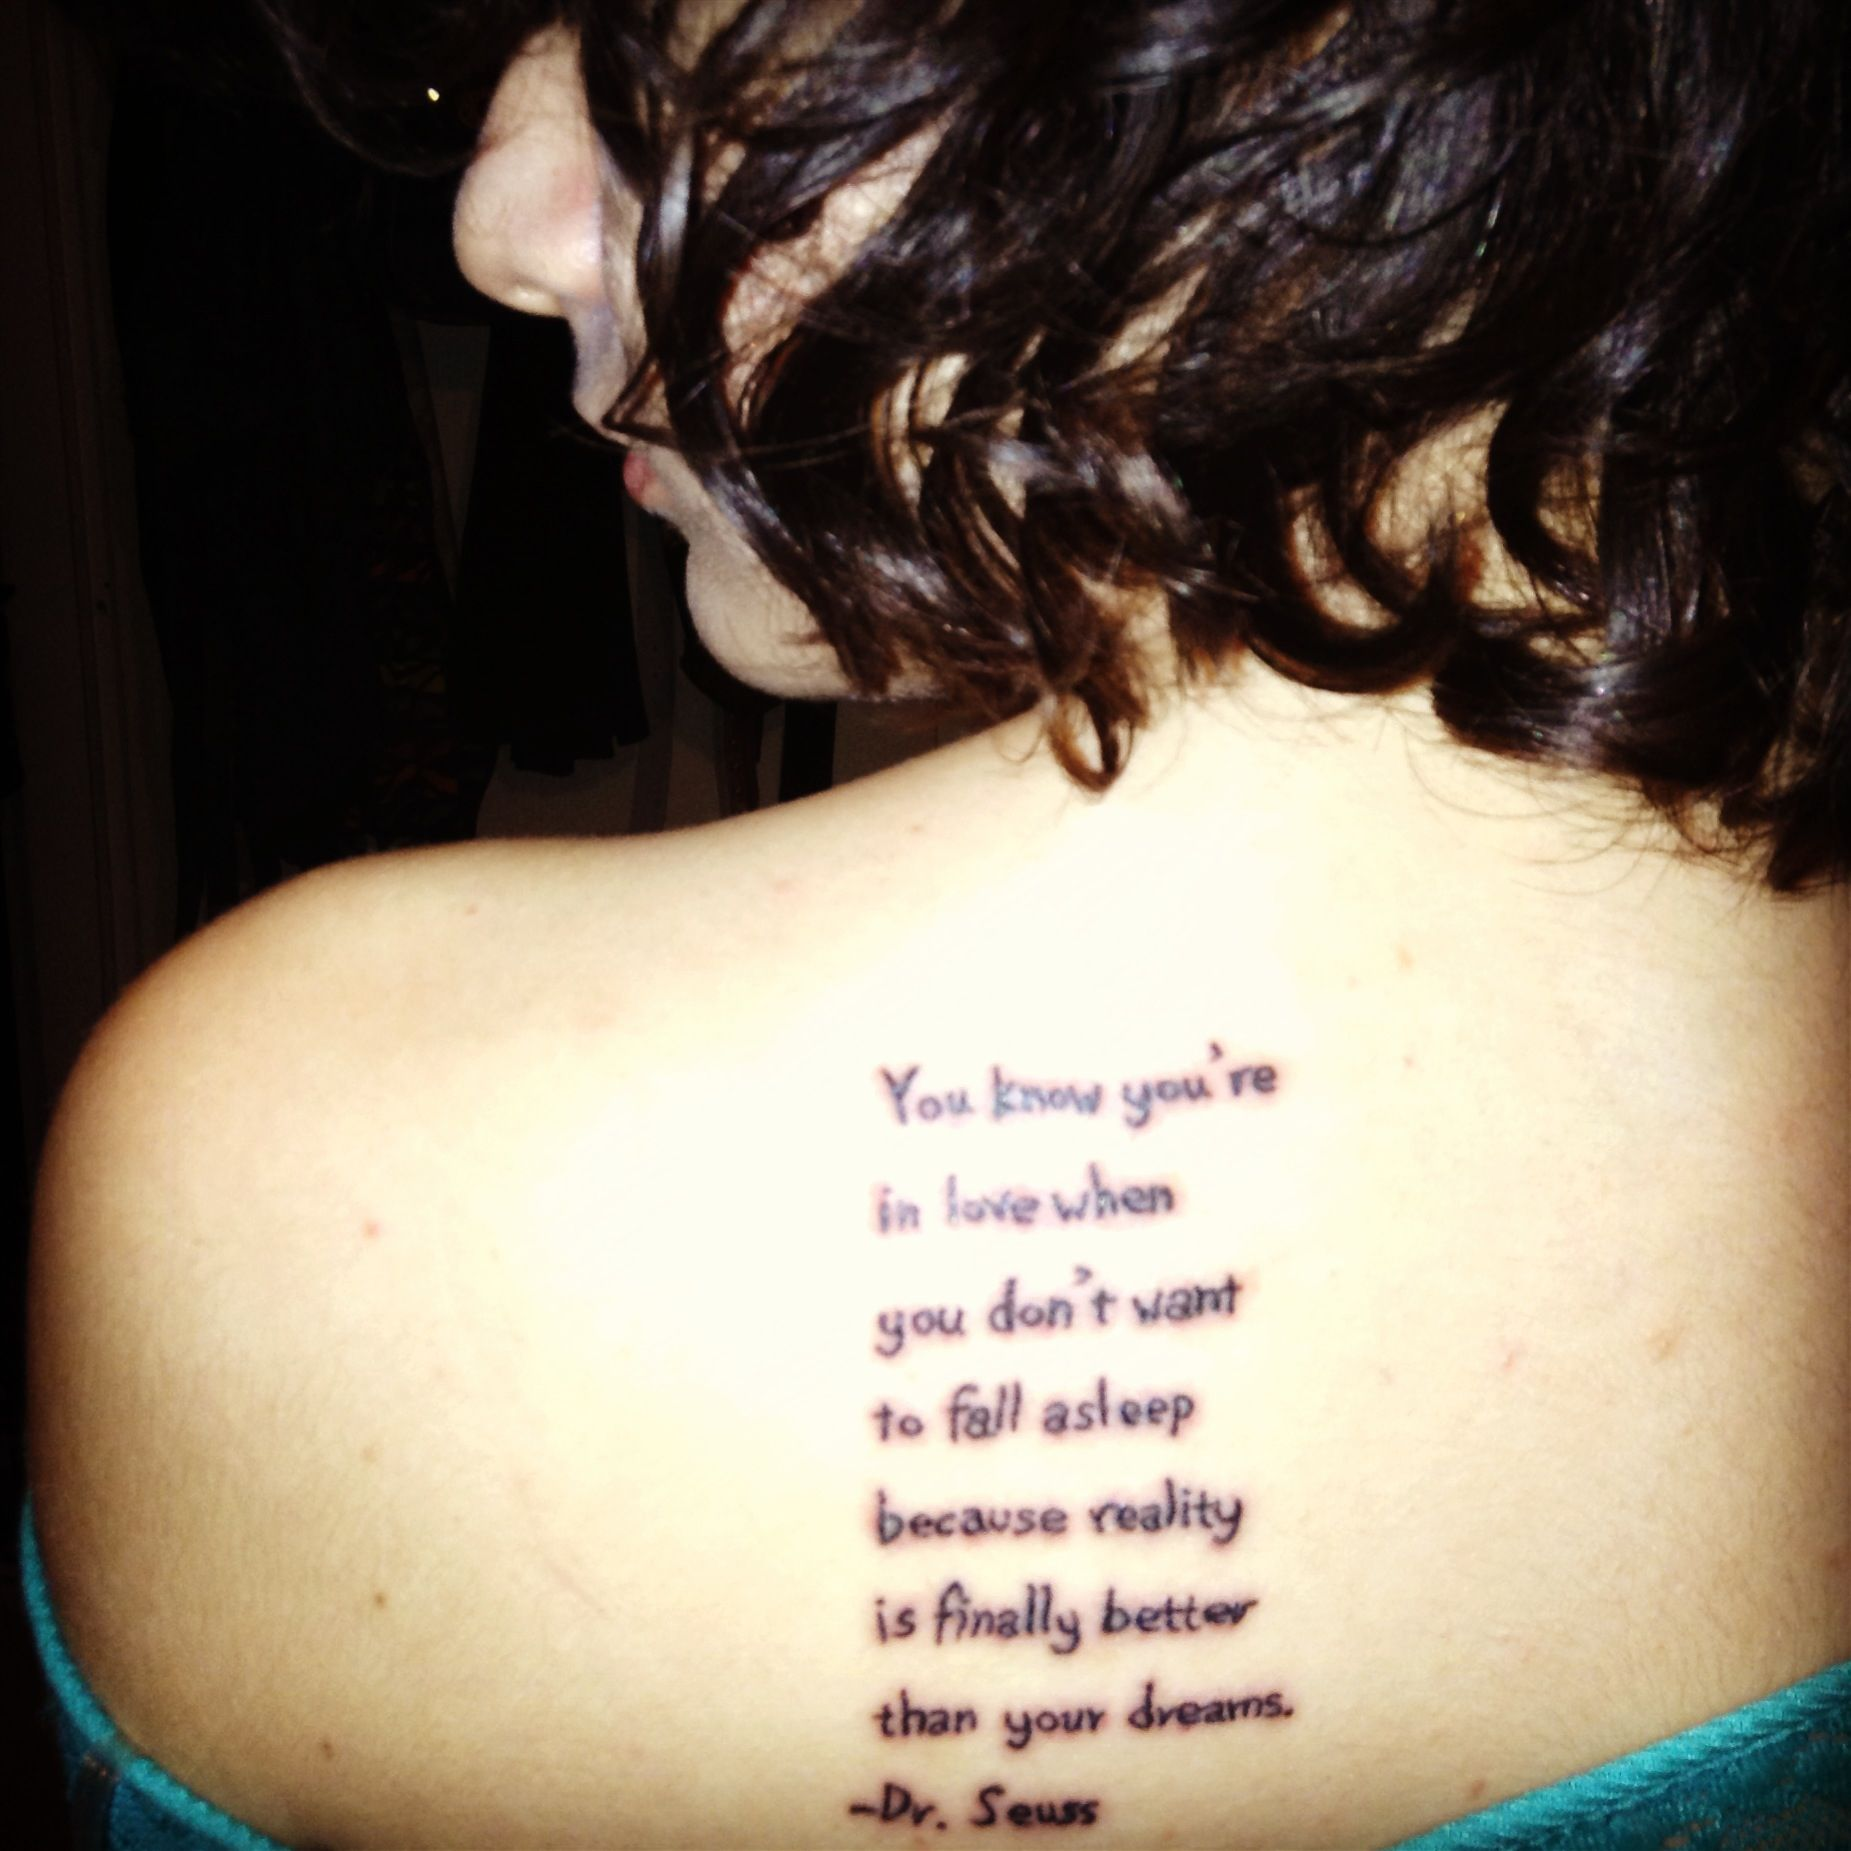 My First Tattoo. You Know You're In Love When You Don't